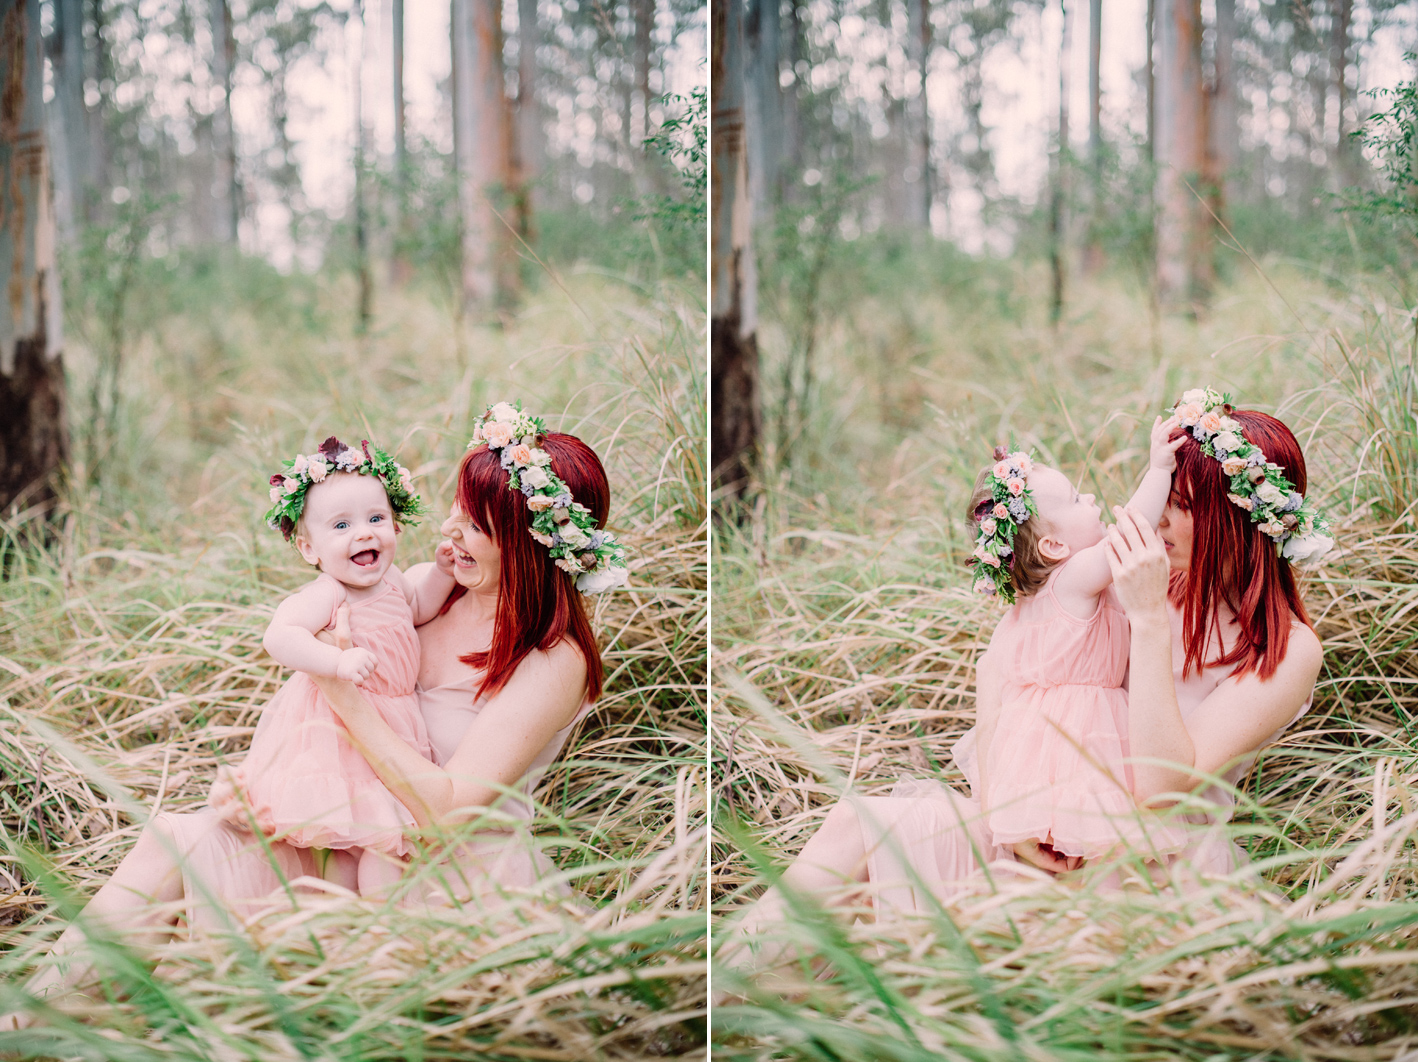 010-family-photos-crown-of-eden-mount-tamborine-sophie-baker-photography